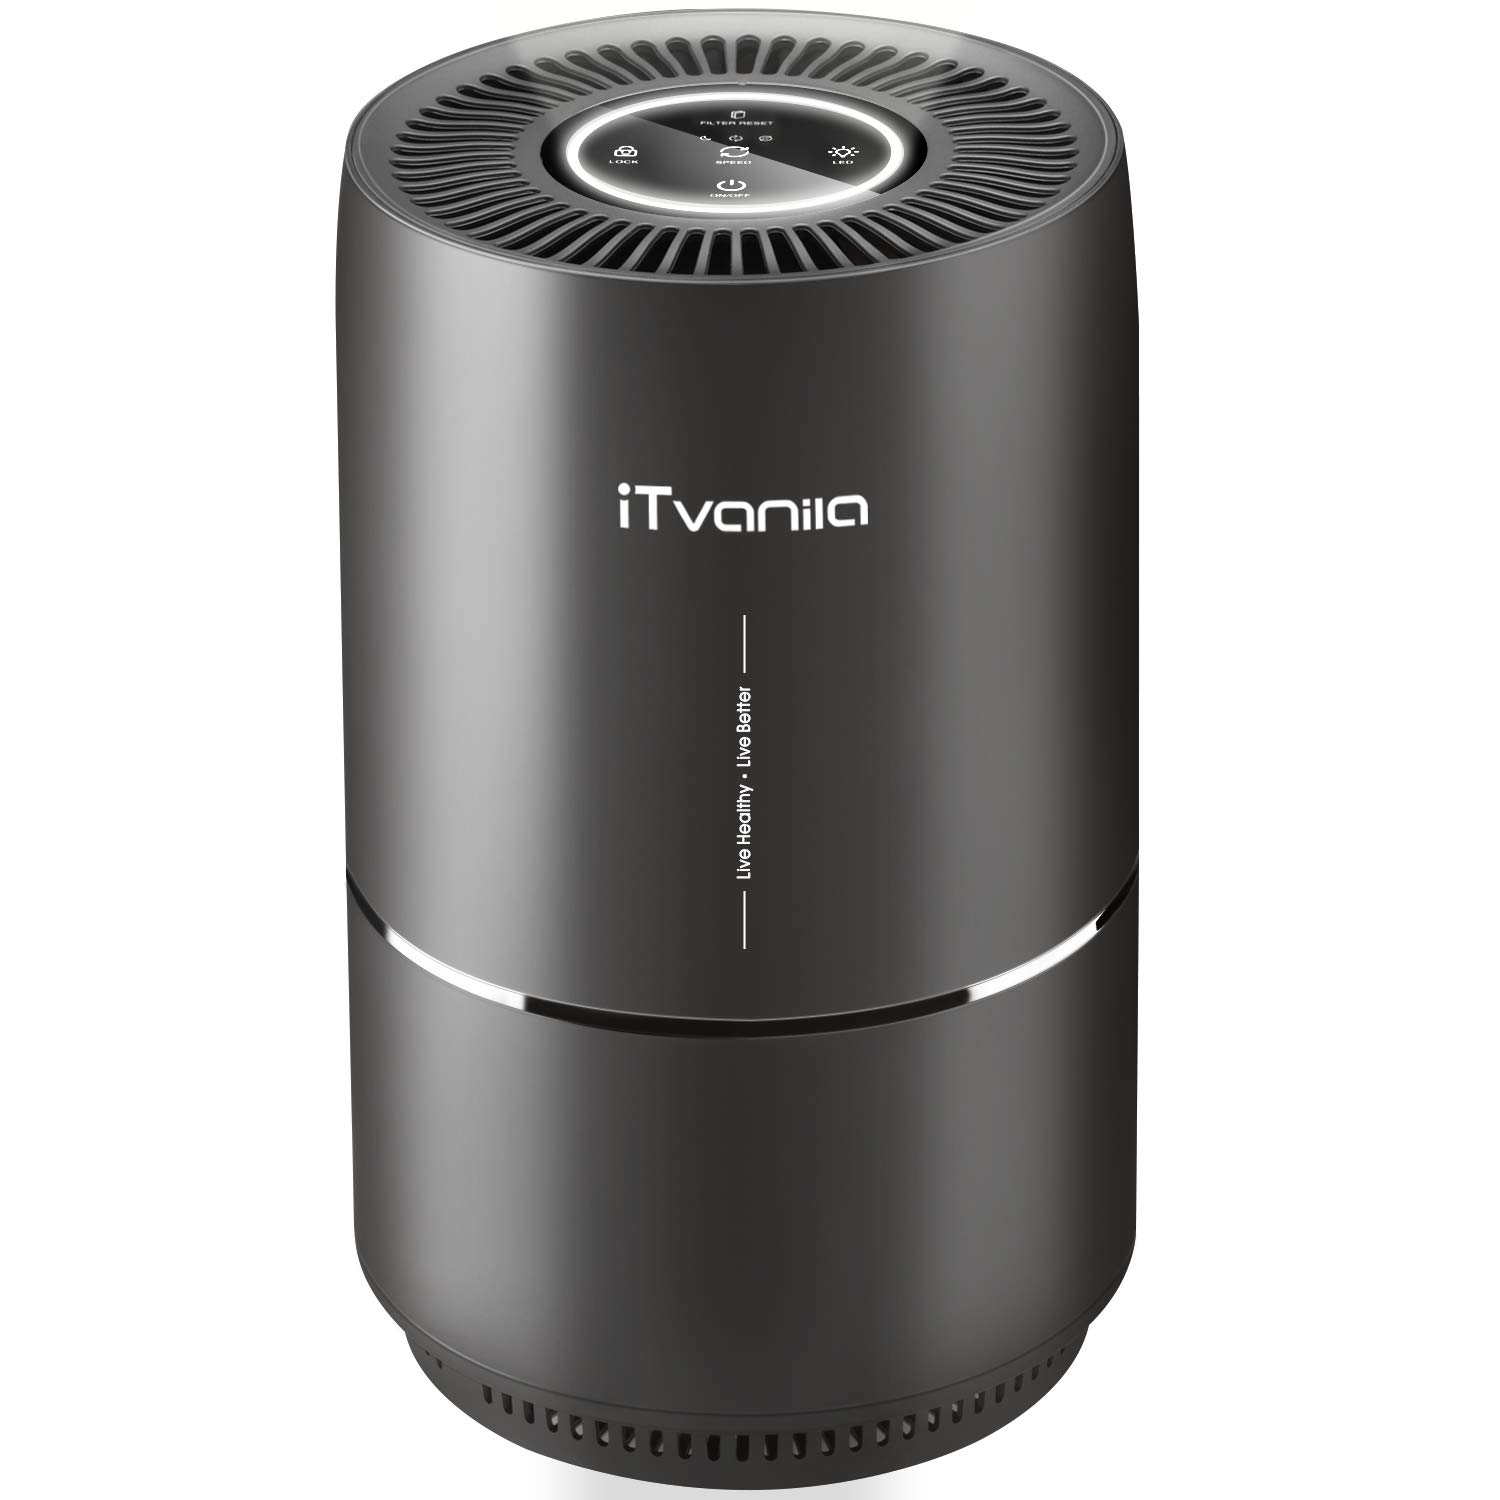 iTvanila Air Purifier, 3-in-1 Air Cleaner Home Air Purifier with True Hepa Filter, Quiet Air Purifier for 99.97% Smoke Odor, Allergies, Dust, Pollen, Pet Dander, Night Light, US-120V